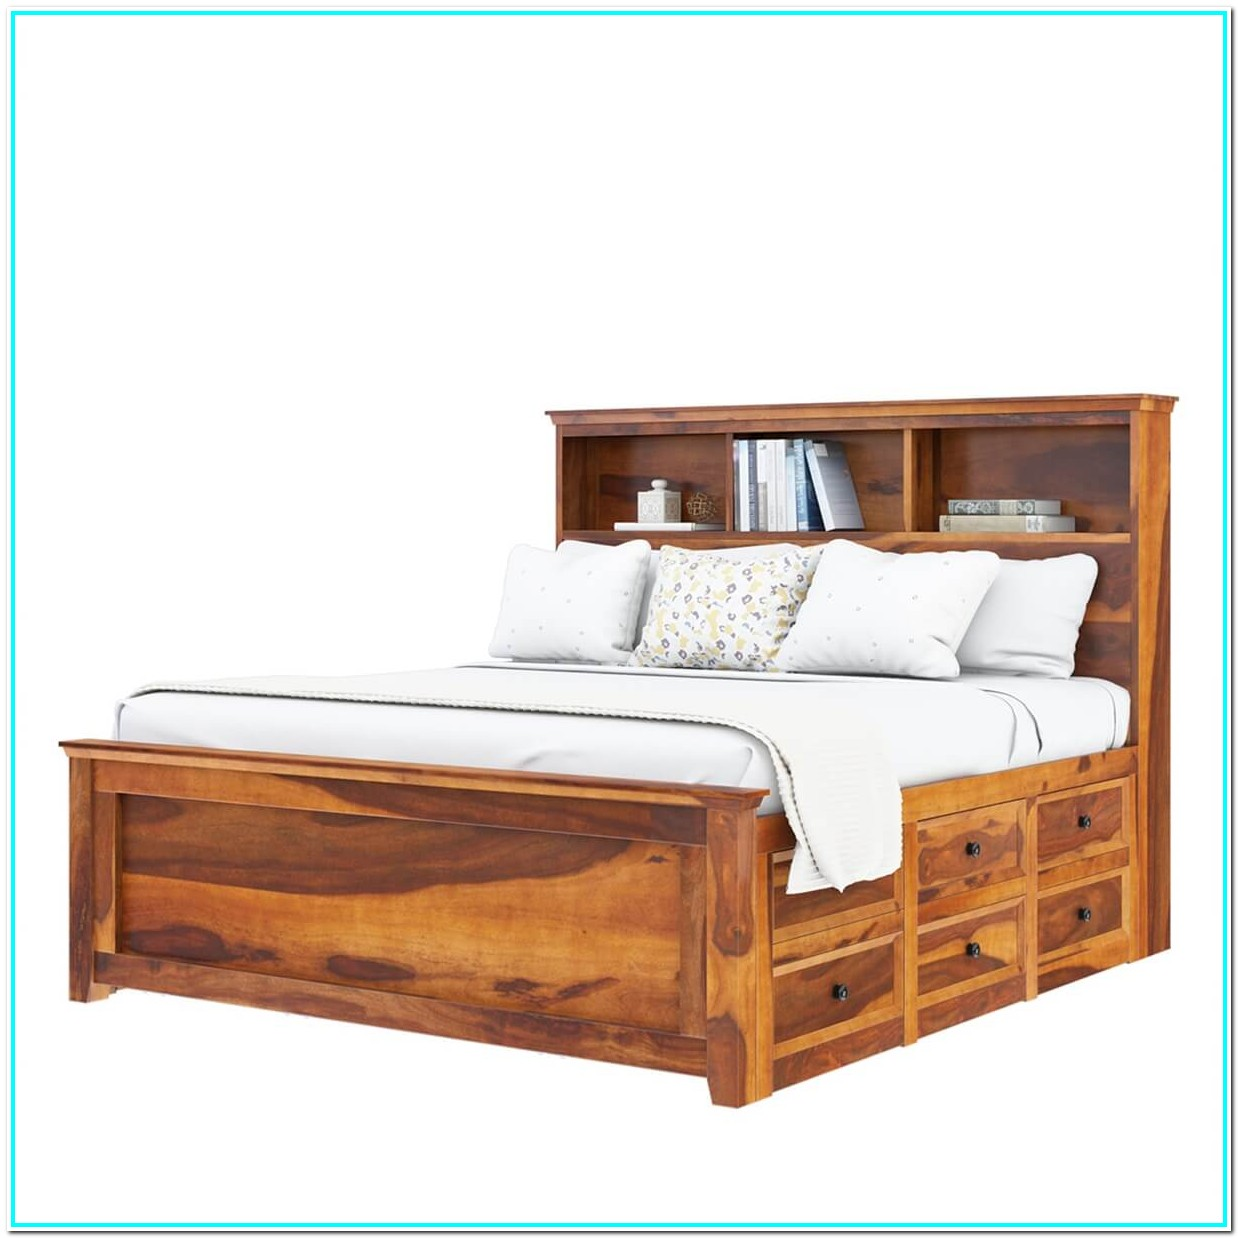 Solid Wood Bunk Beds With Storage